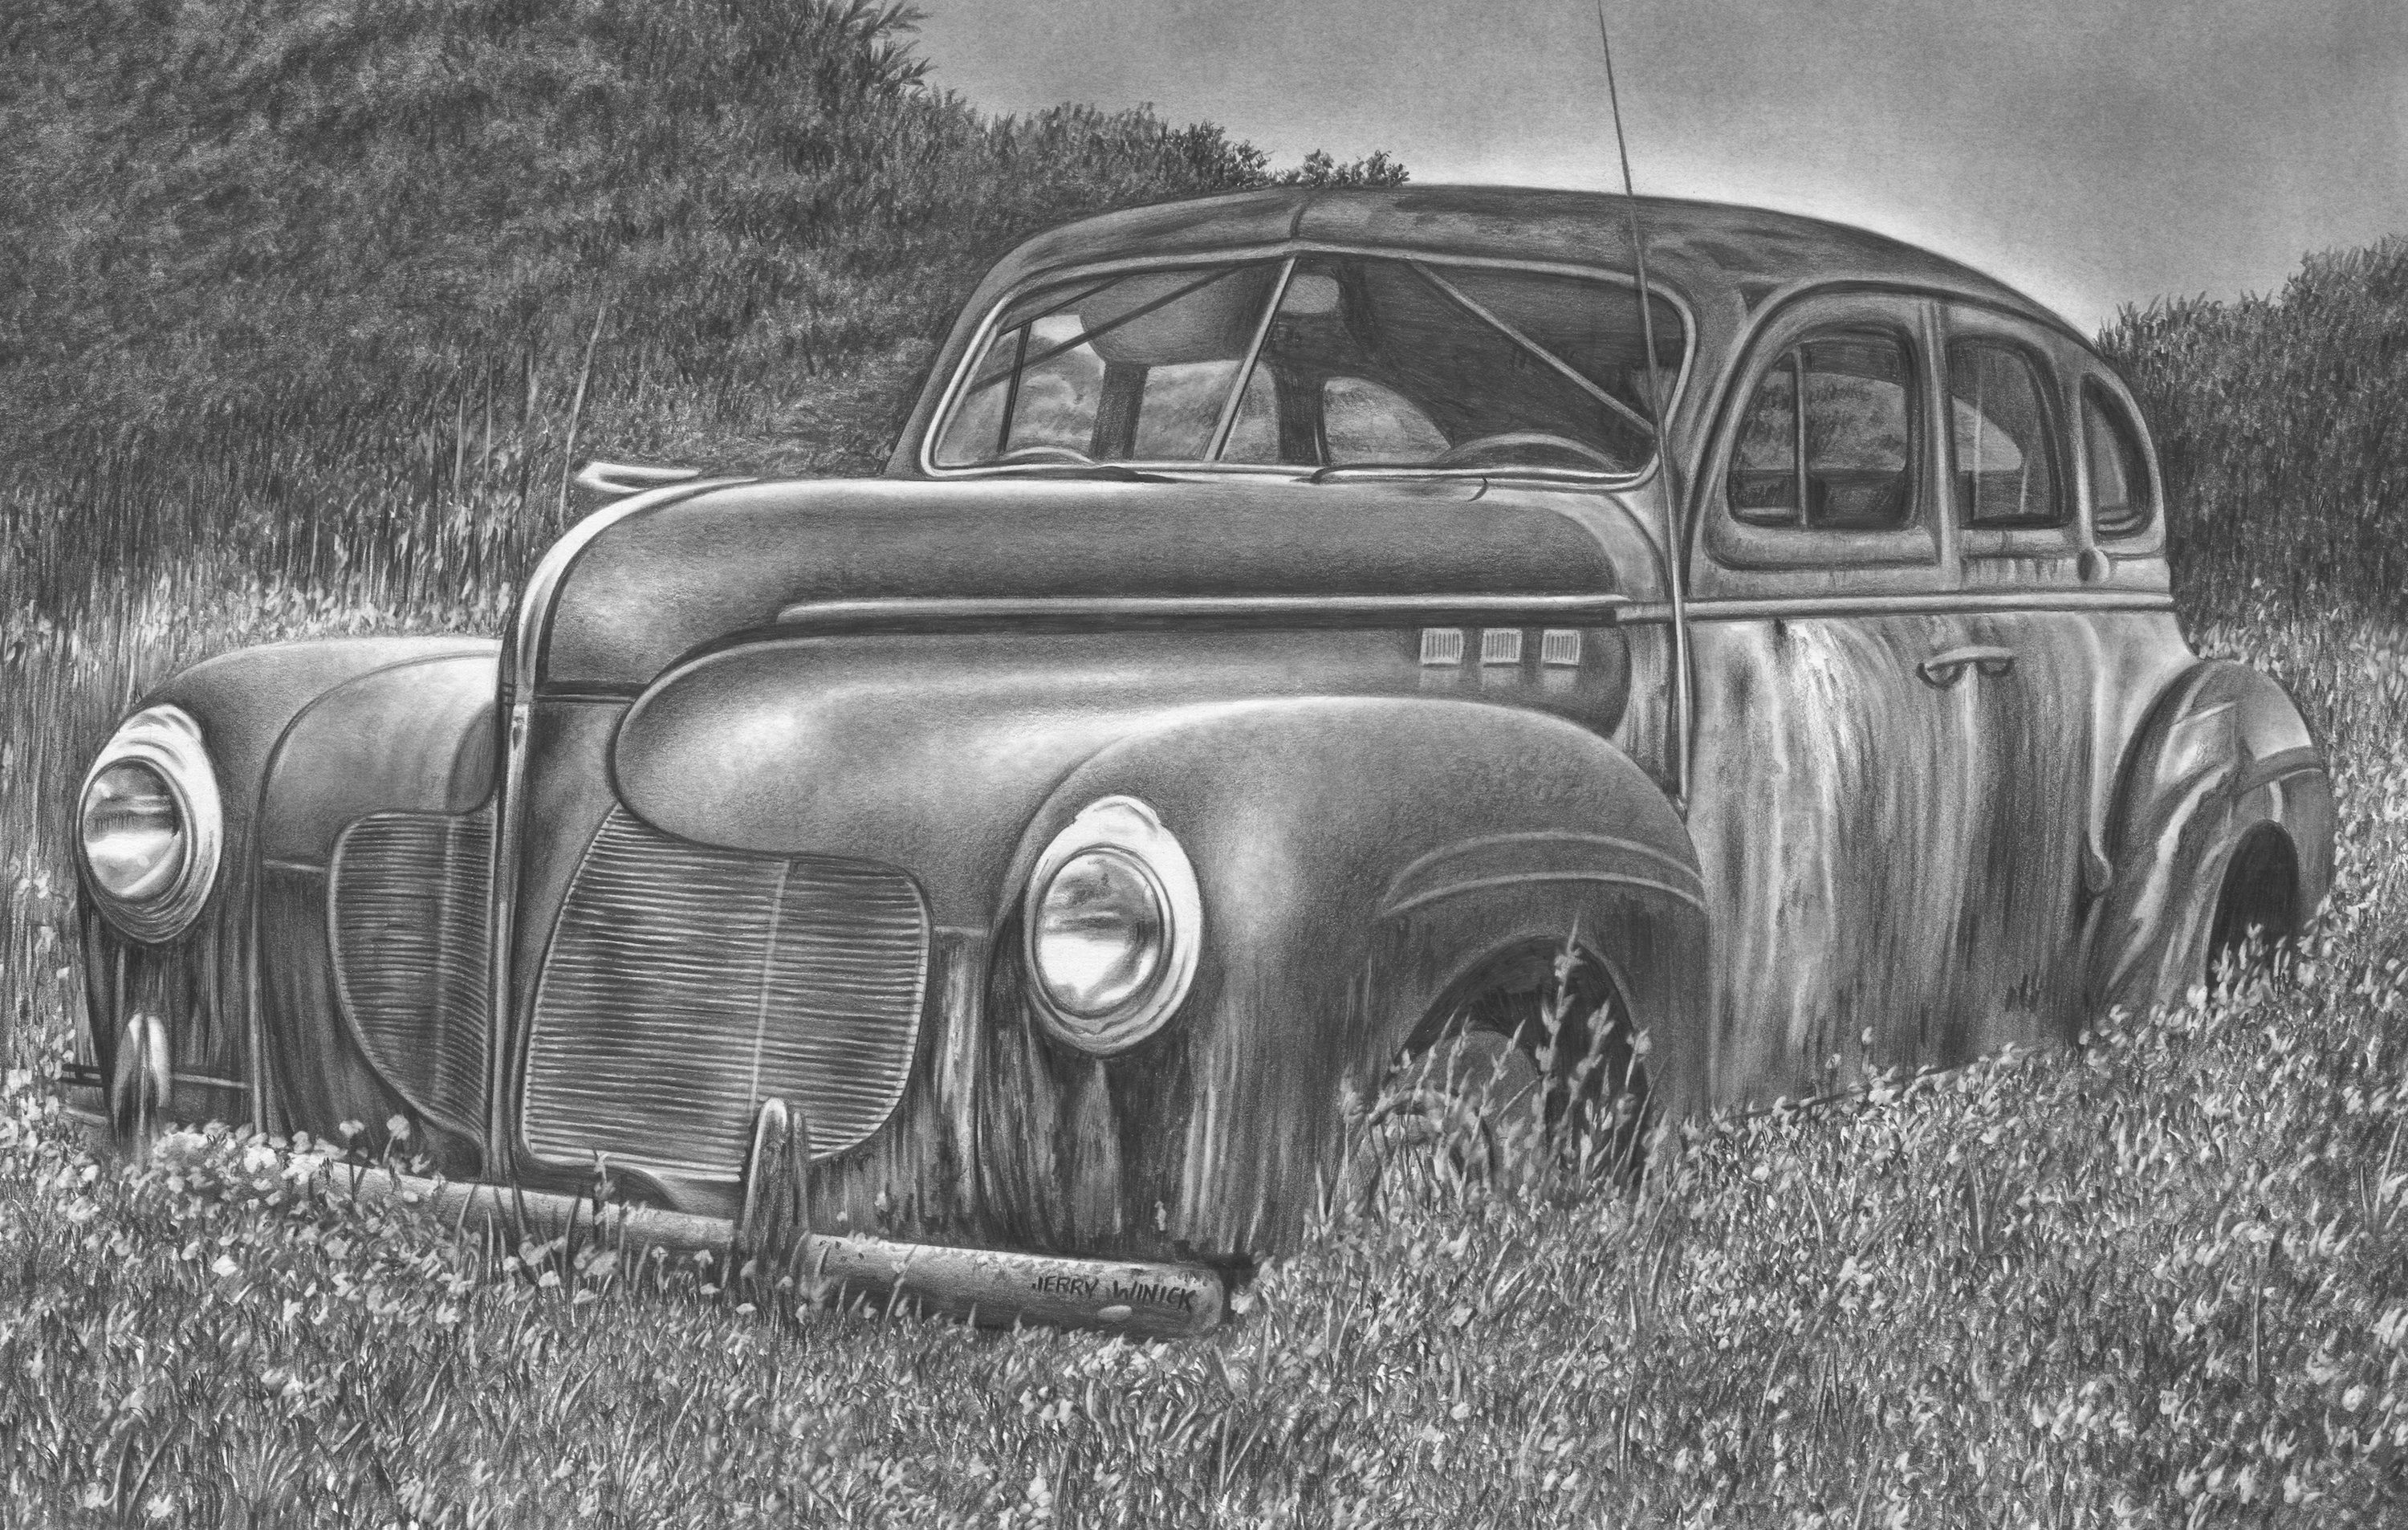 coloring pages cars antiques | Antique Car | Antique cars, Pencil drawings, Car drawings